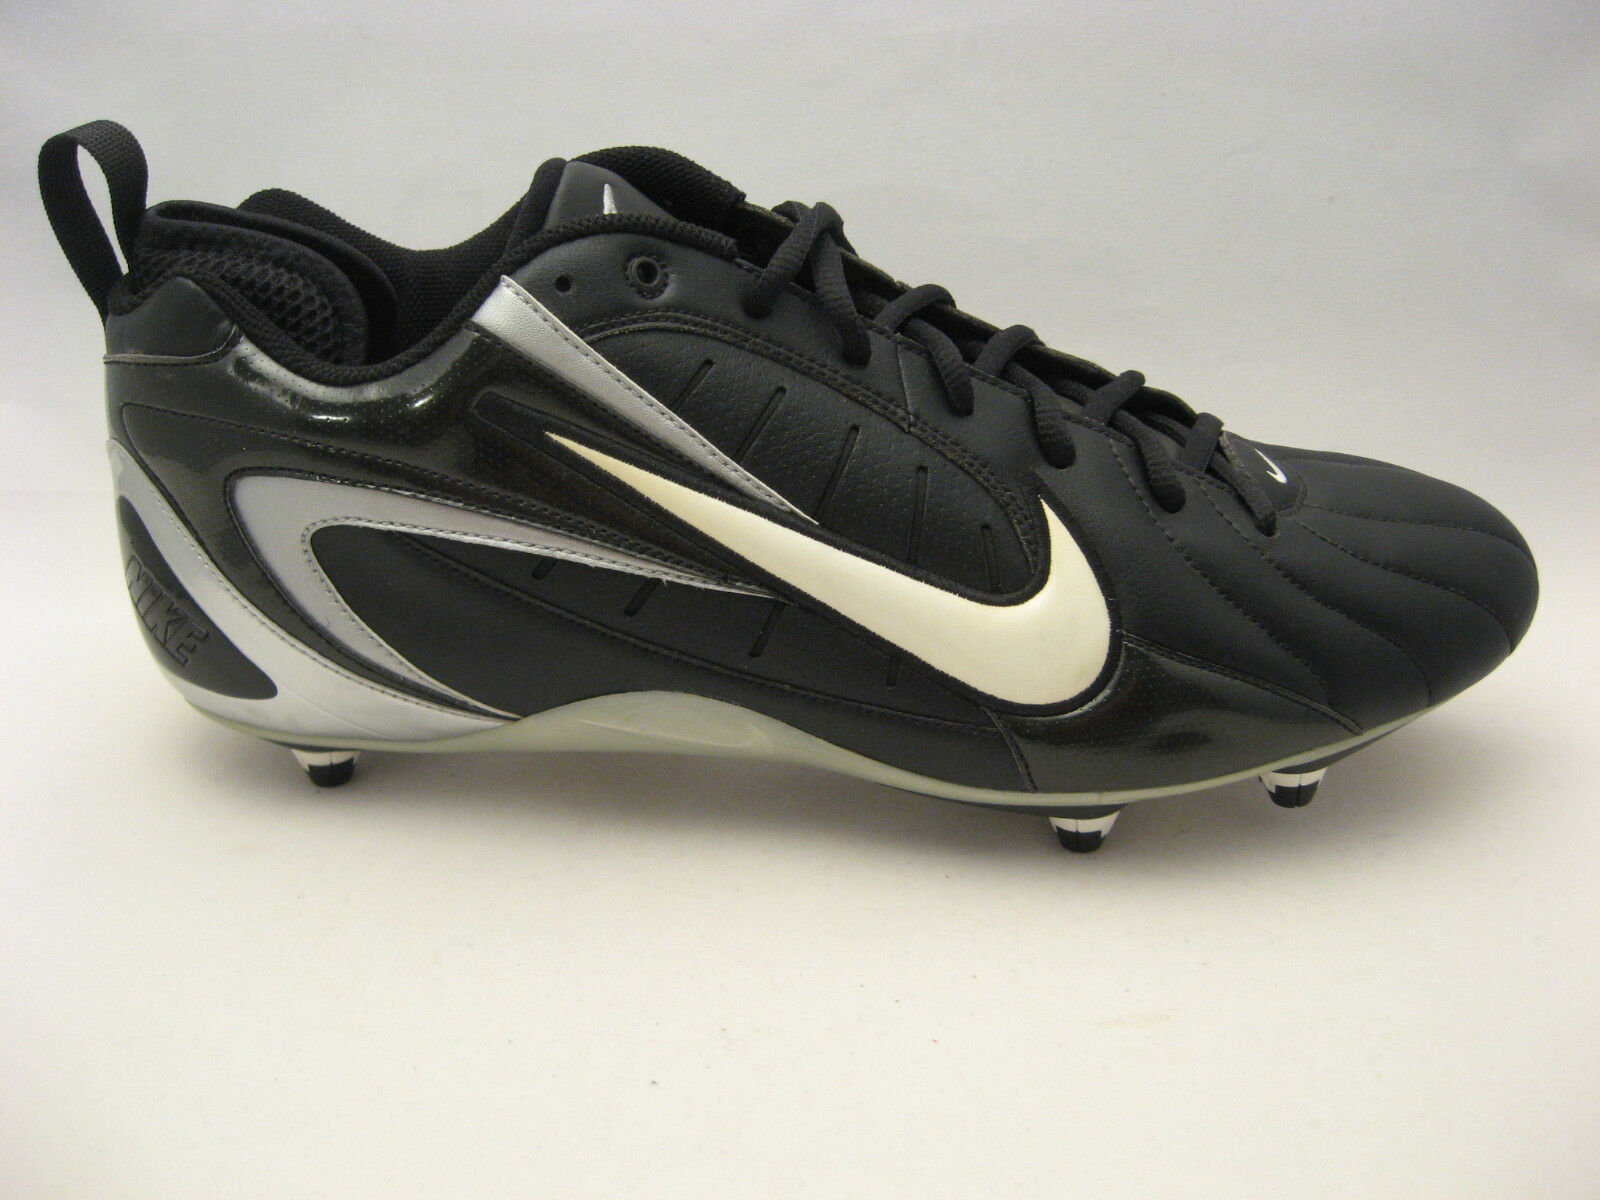 Nike Mens Super Speed D Football Cleats 15 Black White 313409-011 Pro Style